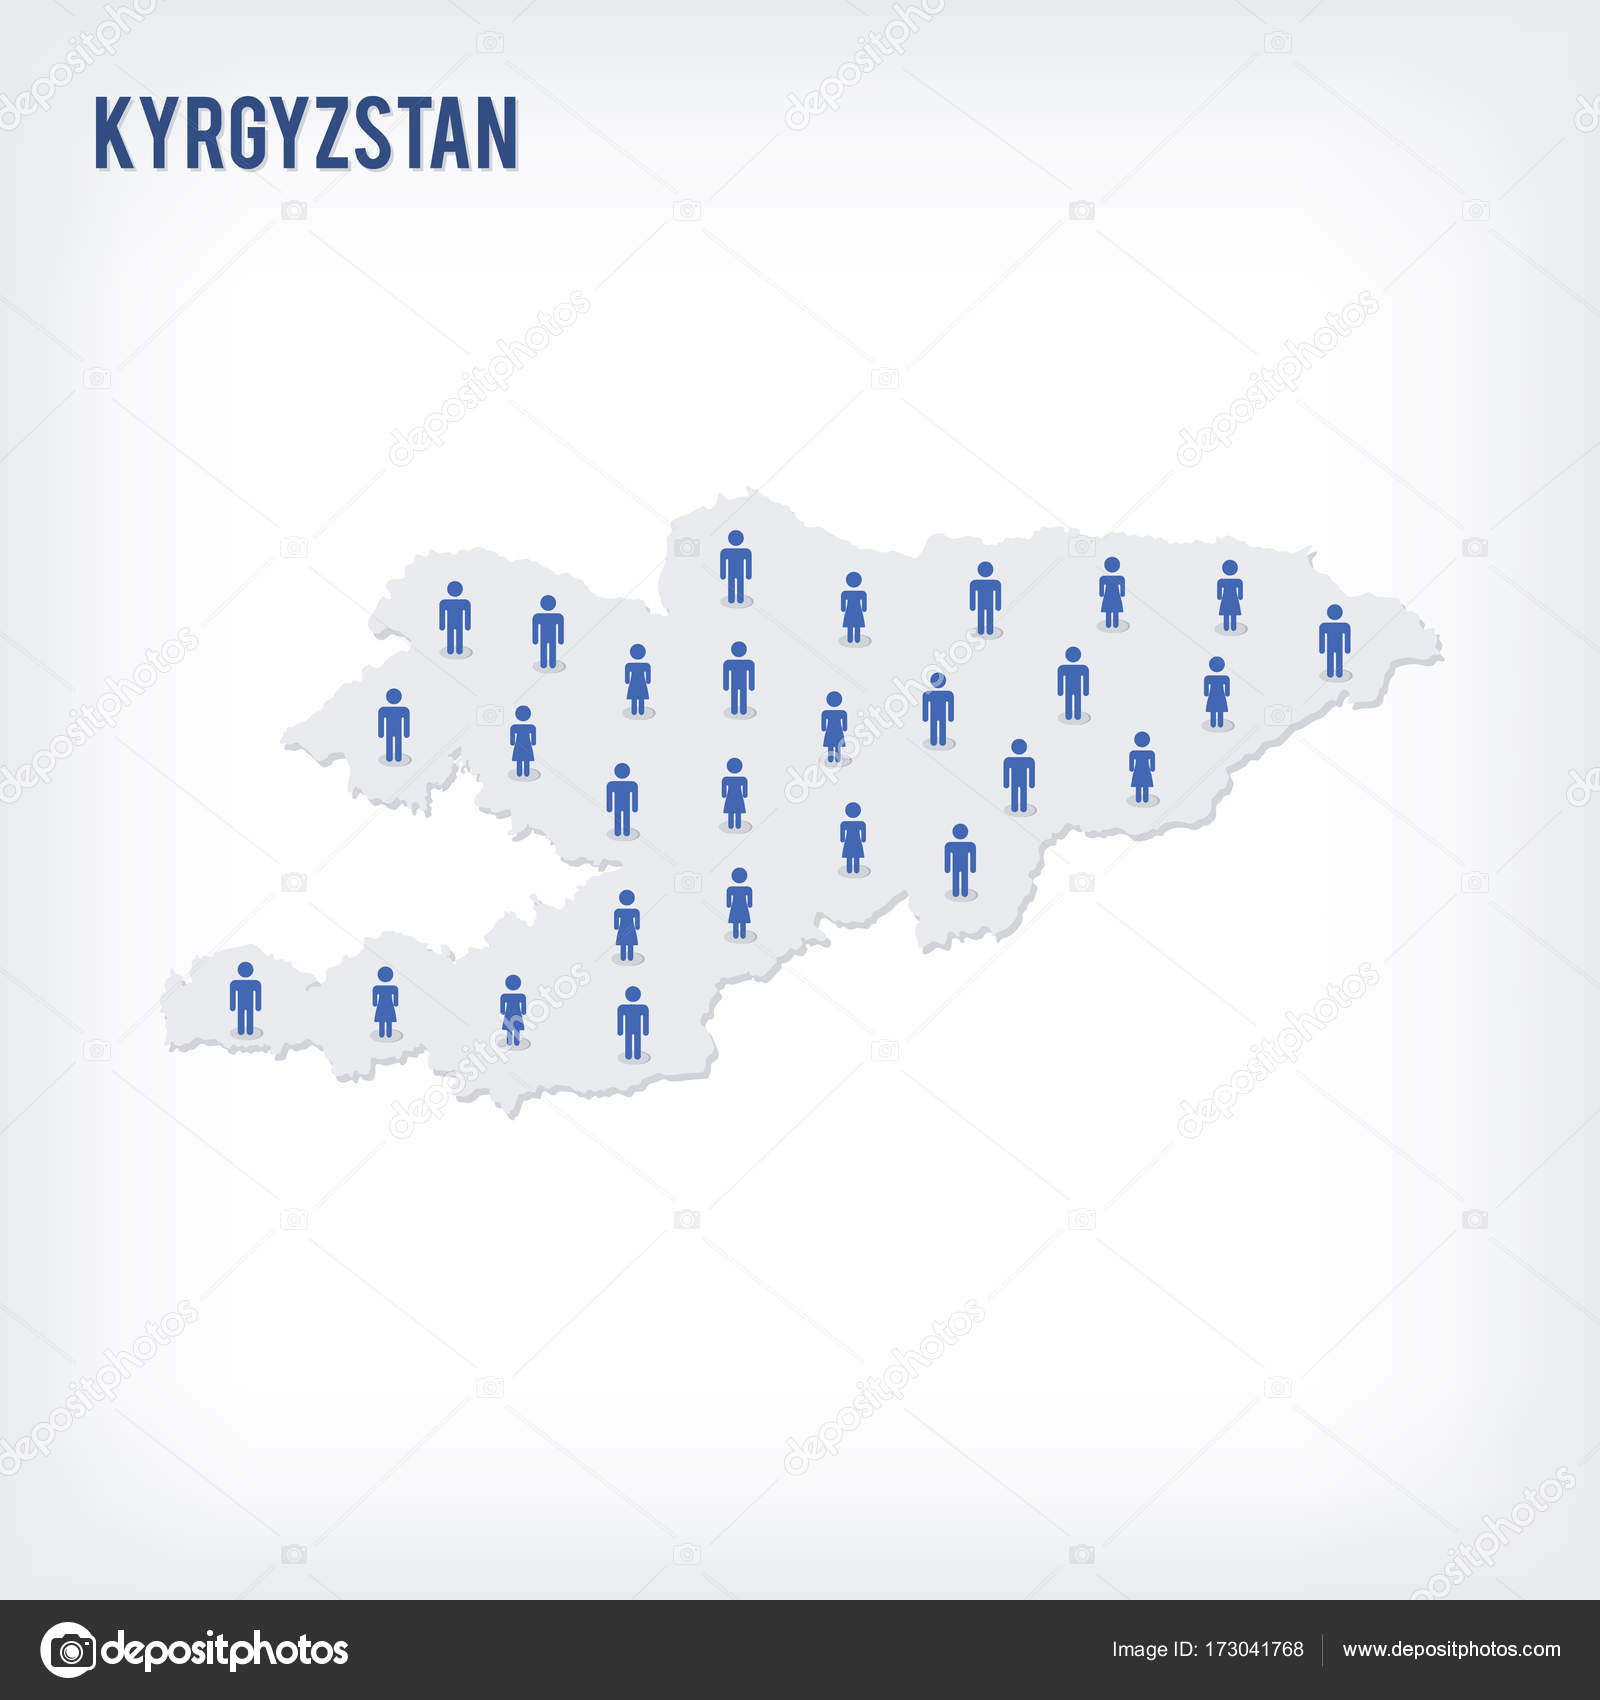 Population Concept Map.Vector People Map Of Kyrgyzstan The Concept Of Population Stock